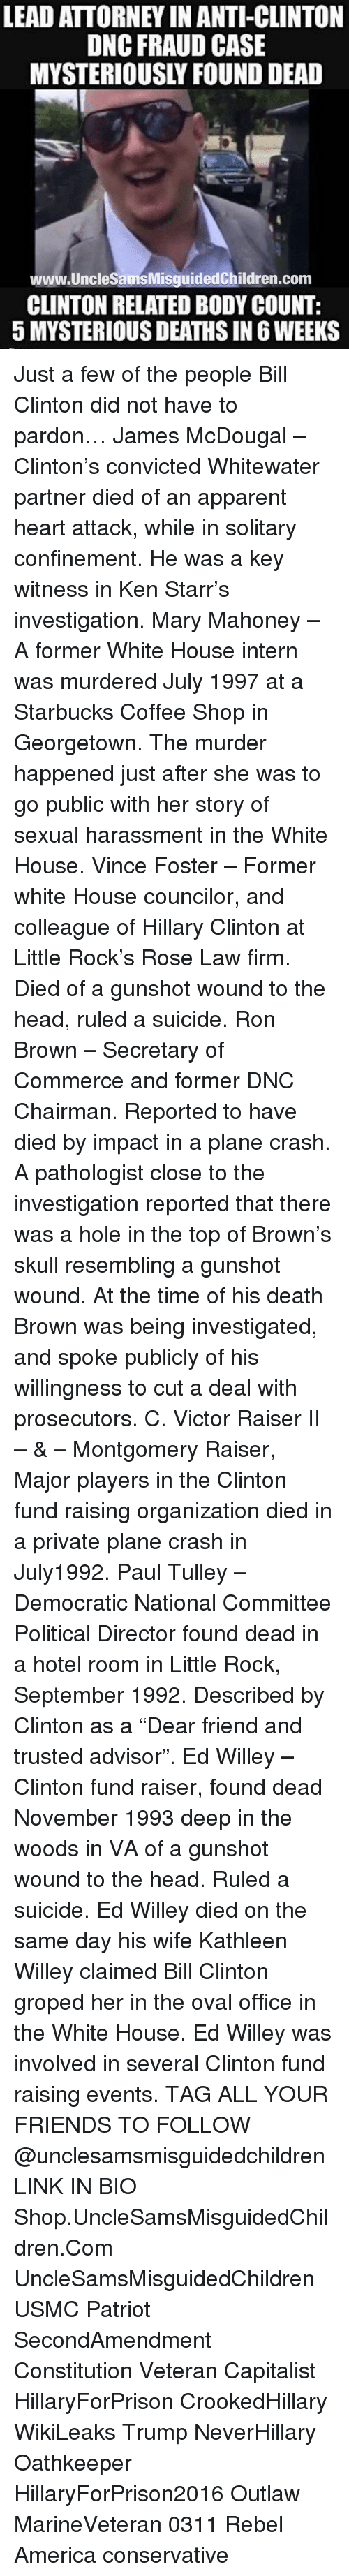 """Pathologist: LEAD ATTORNEY IN ANTI-CLINTON  DNC FRAUD CASE  MYSTERIOUSLY FOUND DEAD  www.UncleSamsMisguidedChildren.com  CLINTON RELATED BODY COUNT:  5 MYSTERIOUS DEATHS IN 6 WEEKS Just a few of the people Bill Clinton did not have to pardon… James McDougal – Clinton's convicted Whitewater partner died of an apparent heart attack, while in solitary confinement. He was a key witness in Ken Starr's investigation. Mary Mahoney – A former White House intern was murdered July 1997 at a Starbucks Coffee Shop in Georgetown. The murder happened just after she was to go public with her story of sexual harassment in the White House. Vince Foster – Former white House councilor, and colleague of Hillary Clinton at Little Rock's Rose Law firm. Died of a gunshot wound to the head, ruled a suicide. Ron Brown – Secretary of Commerce and former DNC Chairman. Reported to have died by impact in a plane crash. A pathologist close to the investigation reported that there was a hole in the top of Brown's skull resembling a gunshot wound. At the time of his death Brown was being investigated, and spoke publicly of his willingness to cut a deal with prosecutors. C. Victor Raiser II – & – Montgomery Raiser, Major players in the Clinton fund raising organization died in a private plane crash in July1992. Paul Tulley – Democratic National Committee Political Director found dead in a hotel room in Little Rock, September 1992. Described by Clinton as a """"Dear friend and trusted advisor"""". Ed Willey – Clinton fund raiser, found dead November 1993 deep in the woods in VA of a gunshot wound to the head. Ruled a suicide. Ed Willey died on the same day his wife Kathleen Willey claimed Bill Clinton groped her in the oval office in the White House. Ed Willey was involved in several Clinton fund raising events. TAG ALL YOUR FRIENDS TO FOLLOW @unclesamsmisguidedchildren LINK IN BIO Shop.UncleSamsMisguidedChildren.Com UncleSamsMisguidedChildren USMC Patriot SecondAmendment Constitution Veteran Capitalist H"""